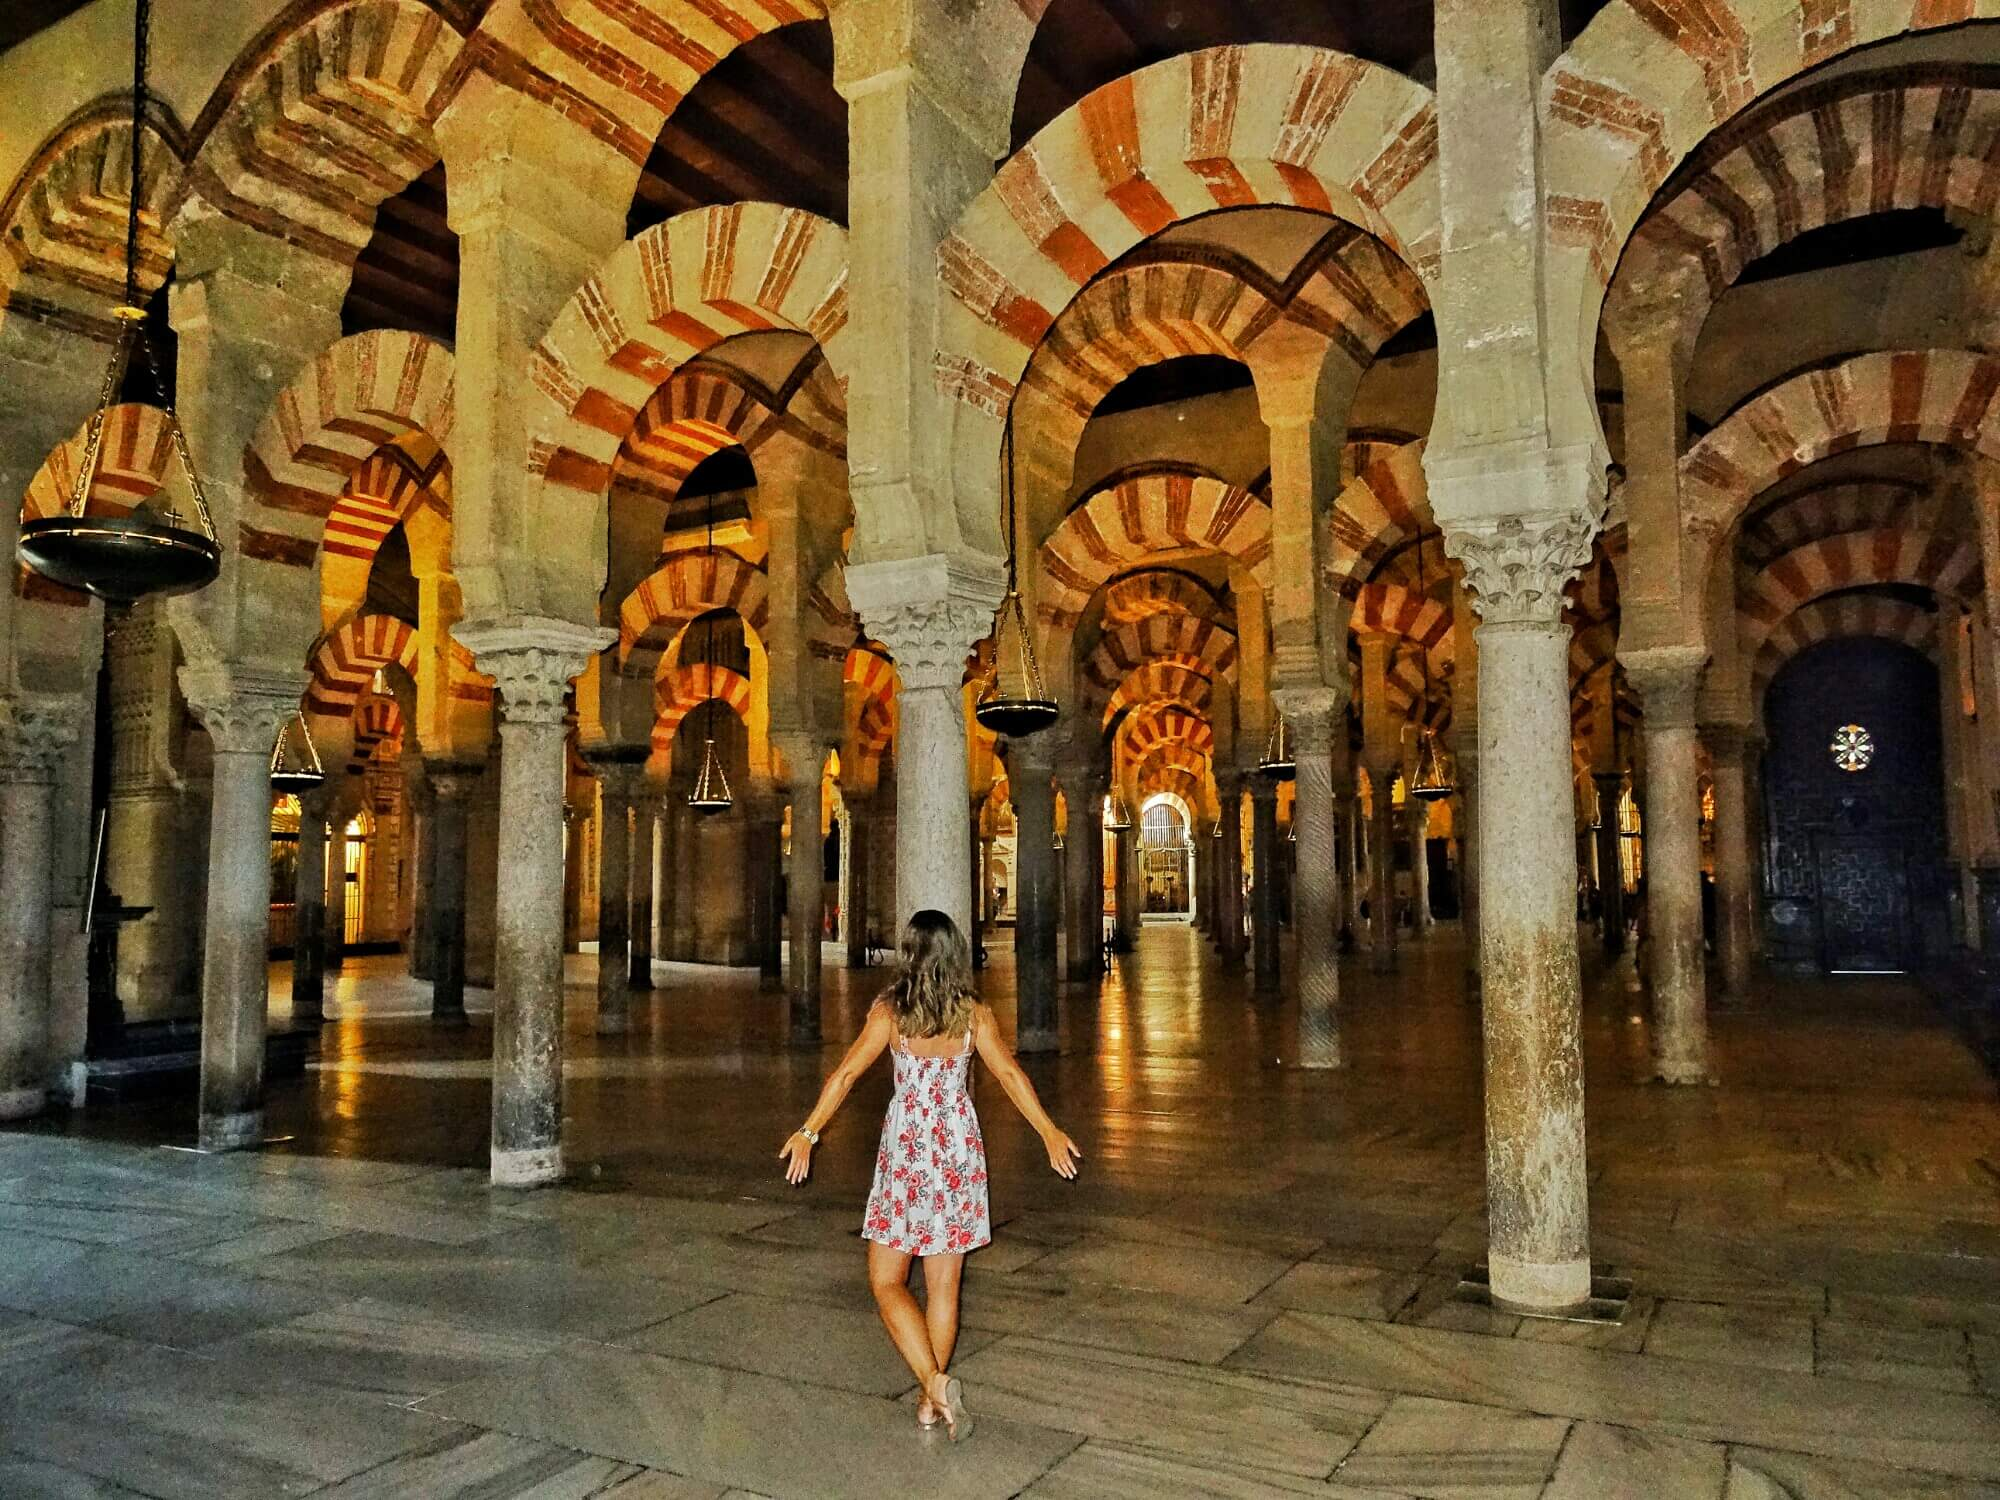 The mezquita in cordoba photos that will make you obsessed for Interior mezquita de cordoba